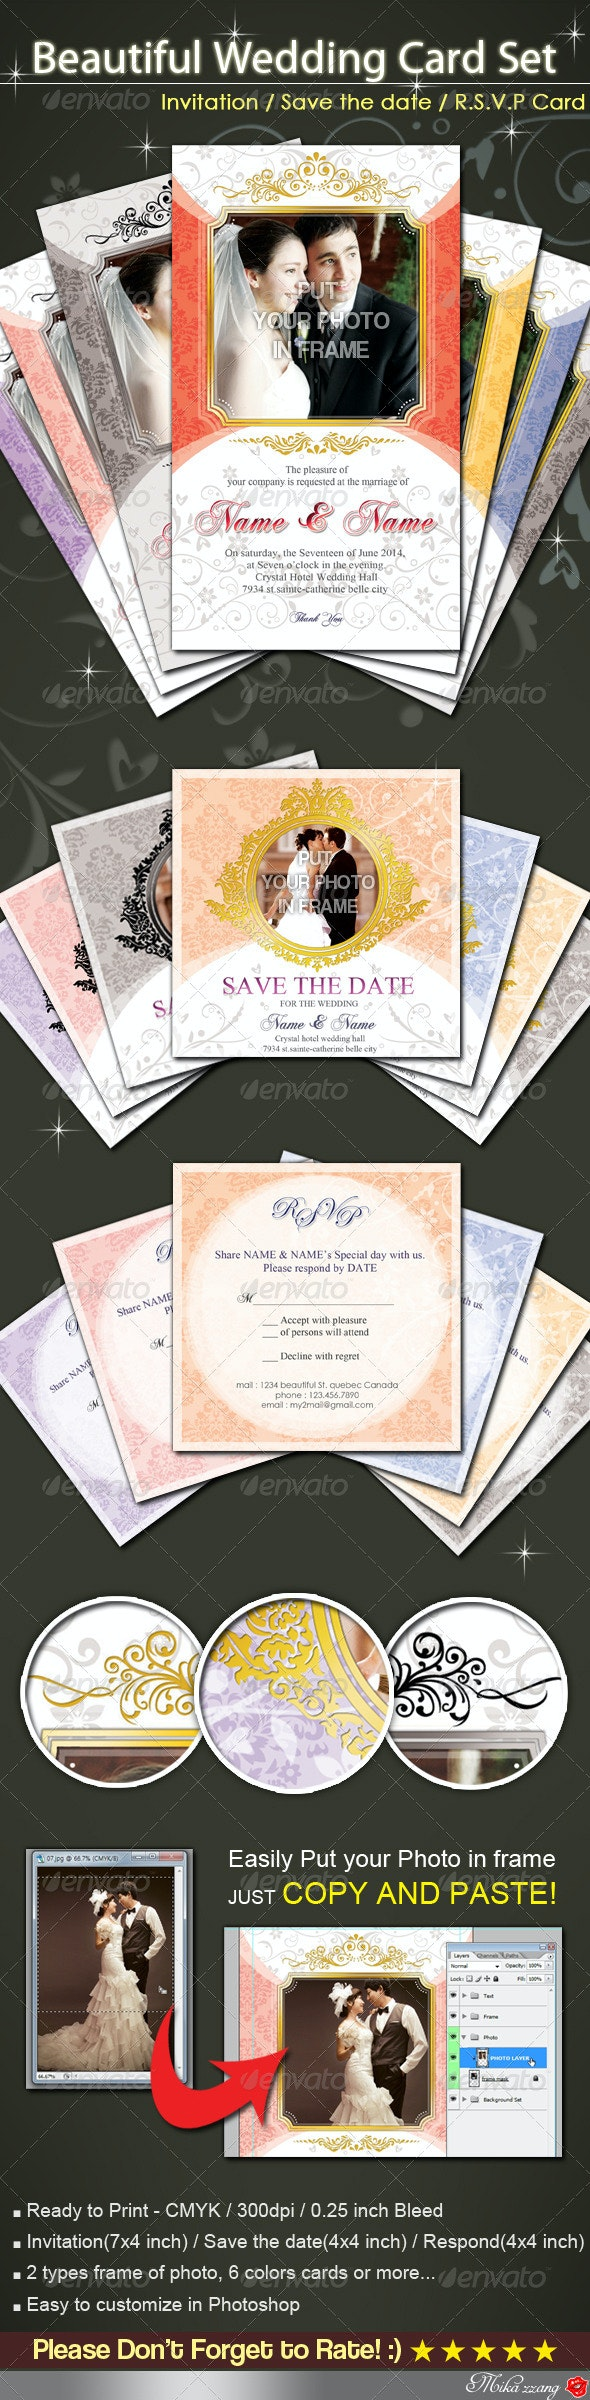 Beautiful Wedding Card - Weddings Cards & Invites